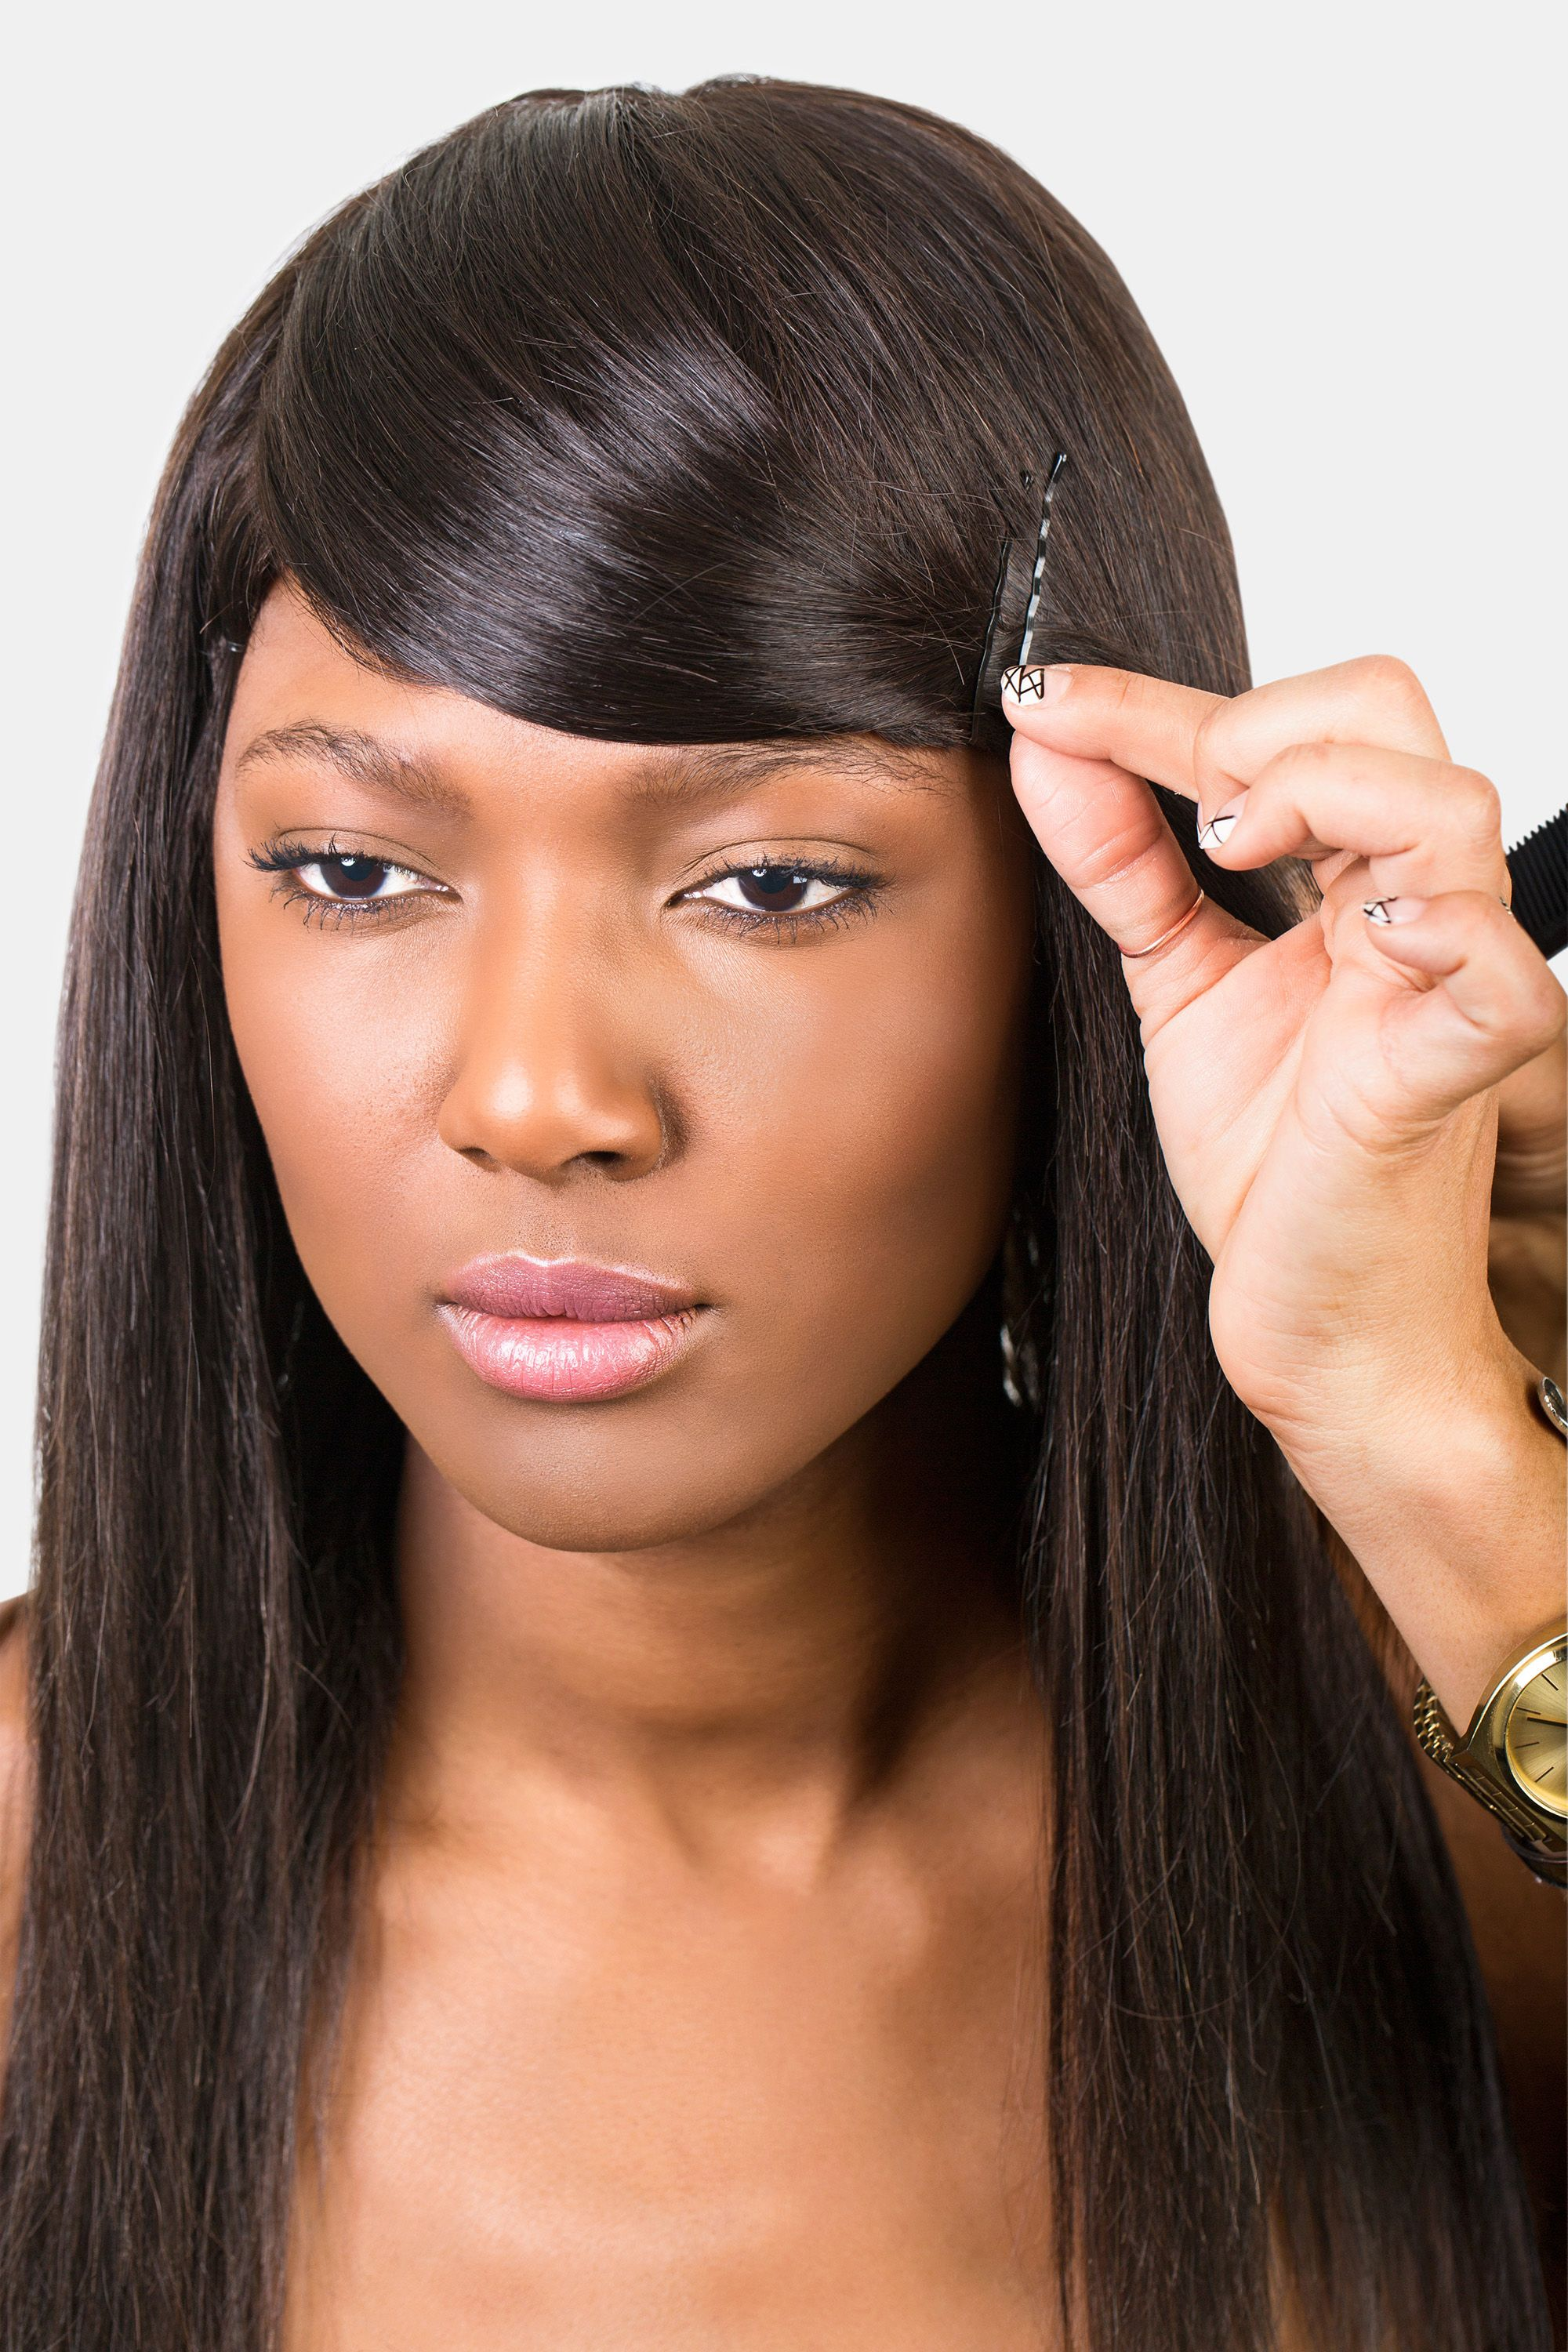 how to style bangs - 5 hairstyles to keep your bangs out of your face